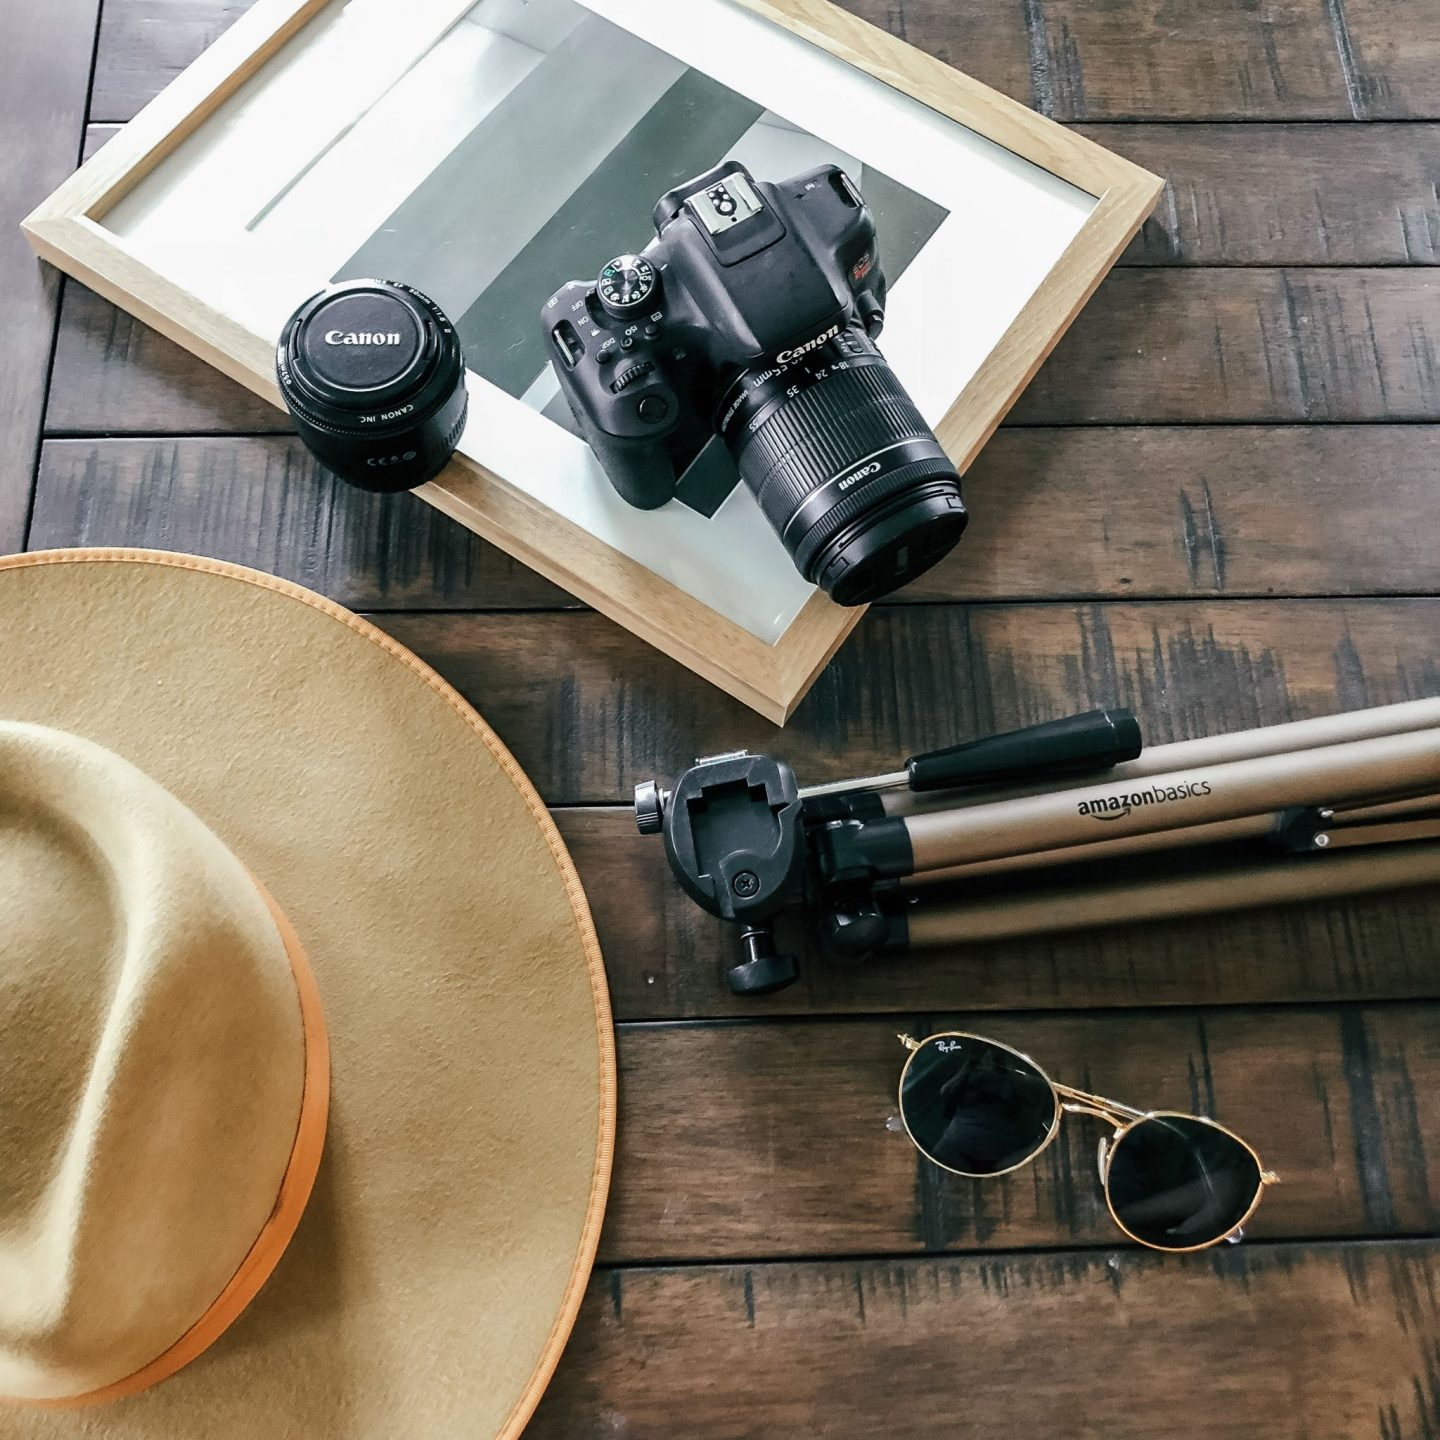 Canon t6i, tripod, fashion blogger, photographer, photos, how to take your own photos